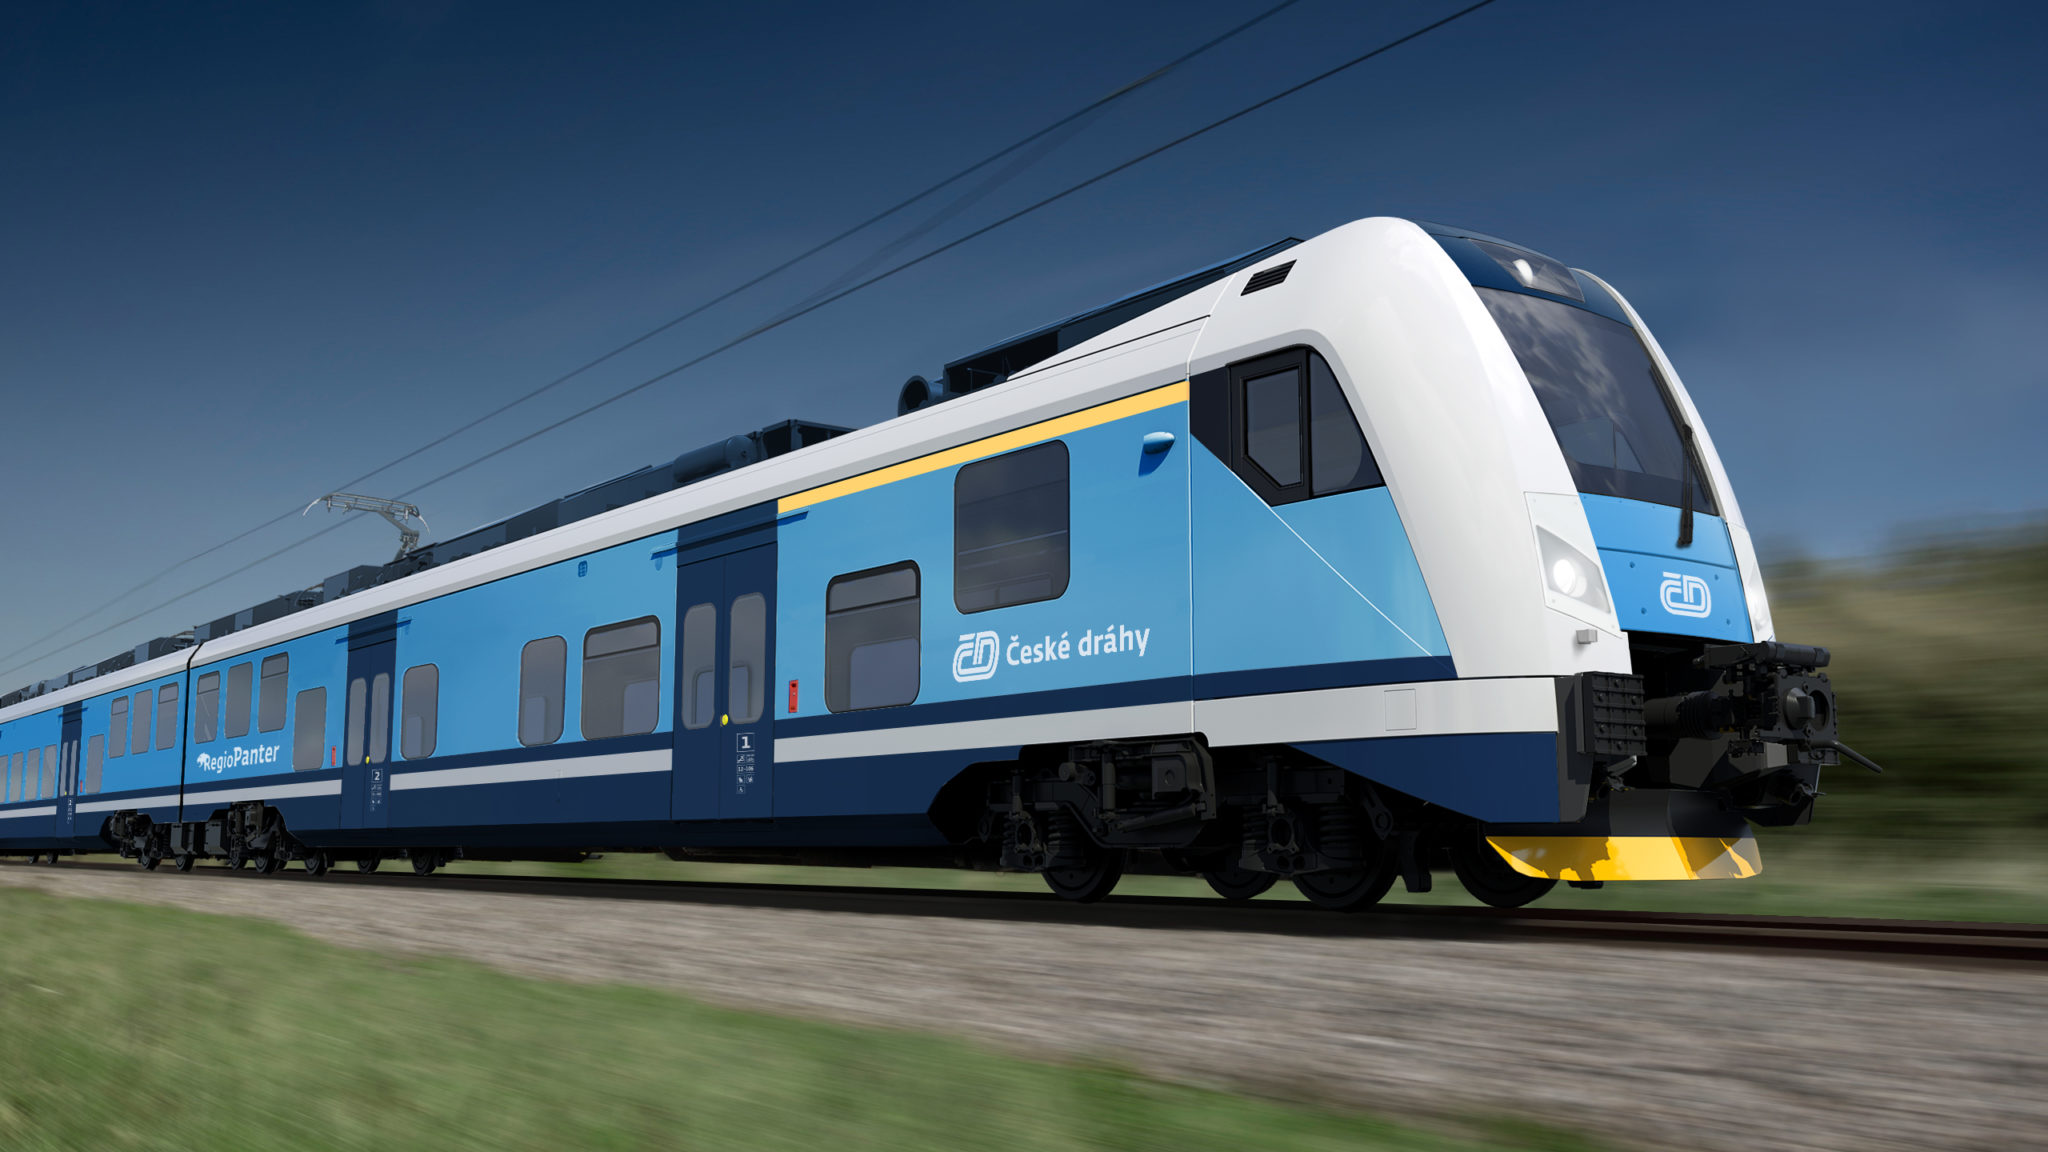 Skoda RegioPanter for Czech Railways